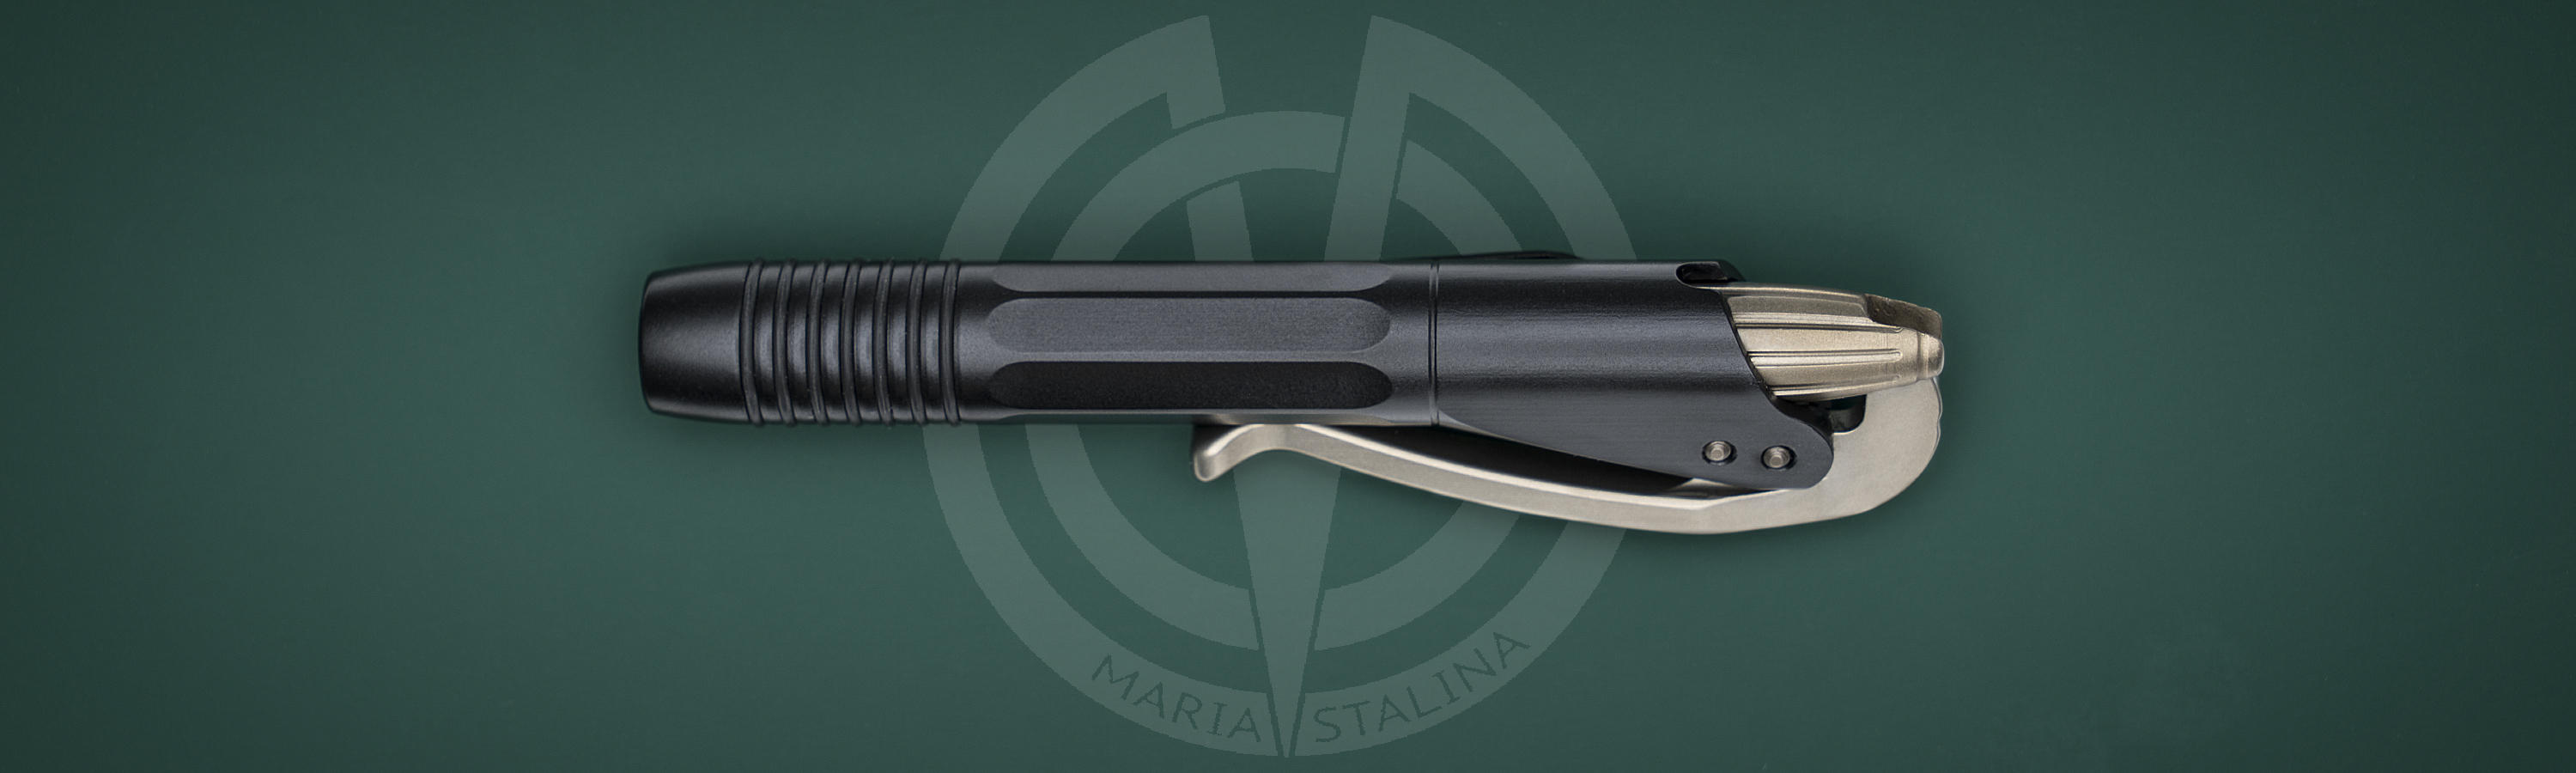 titanium tactical pen